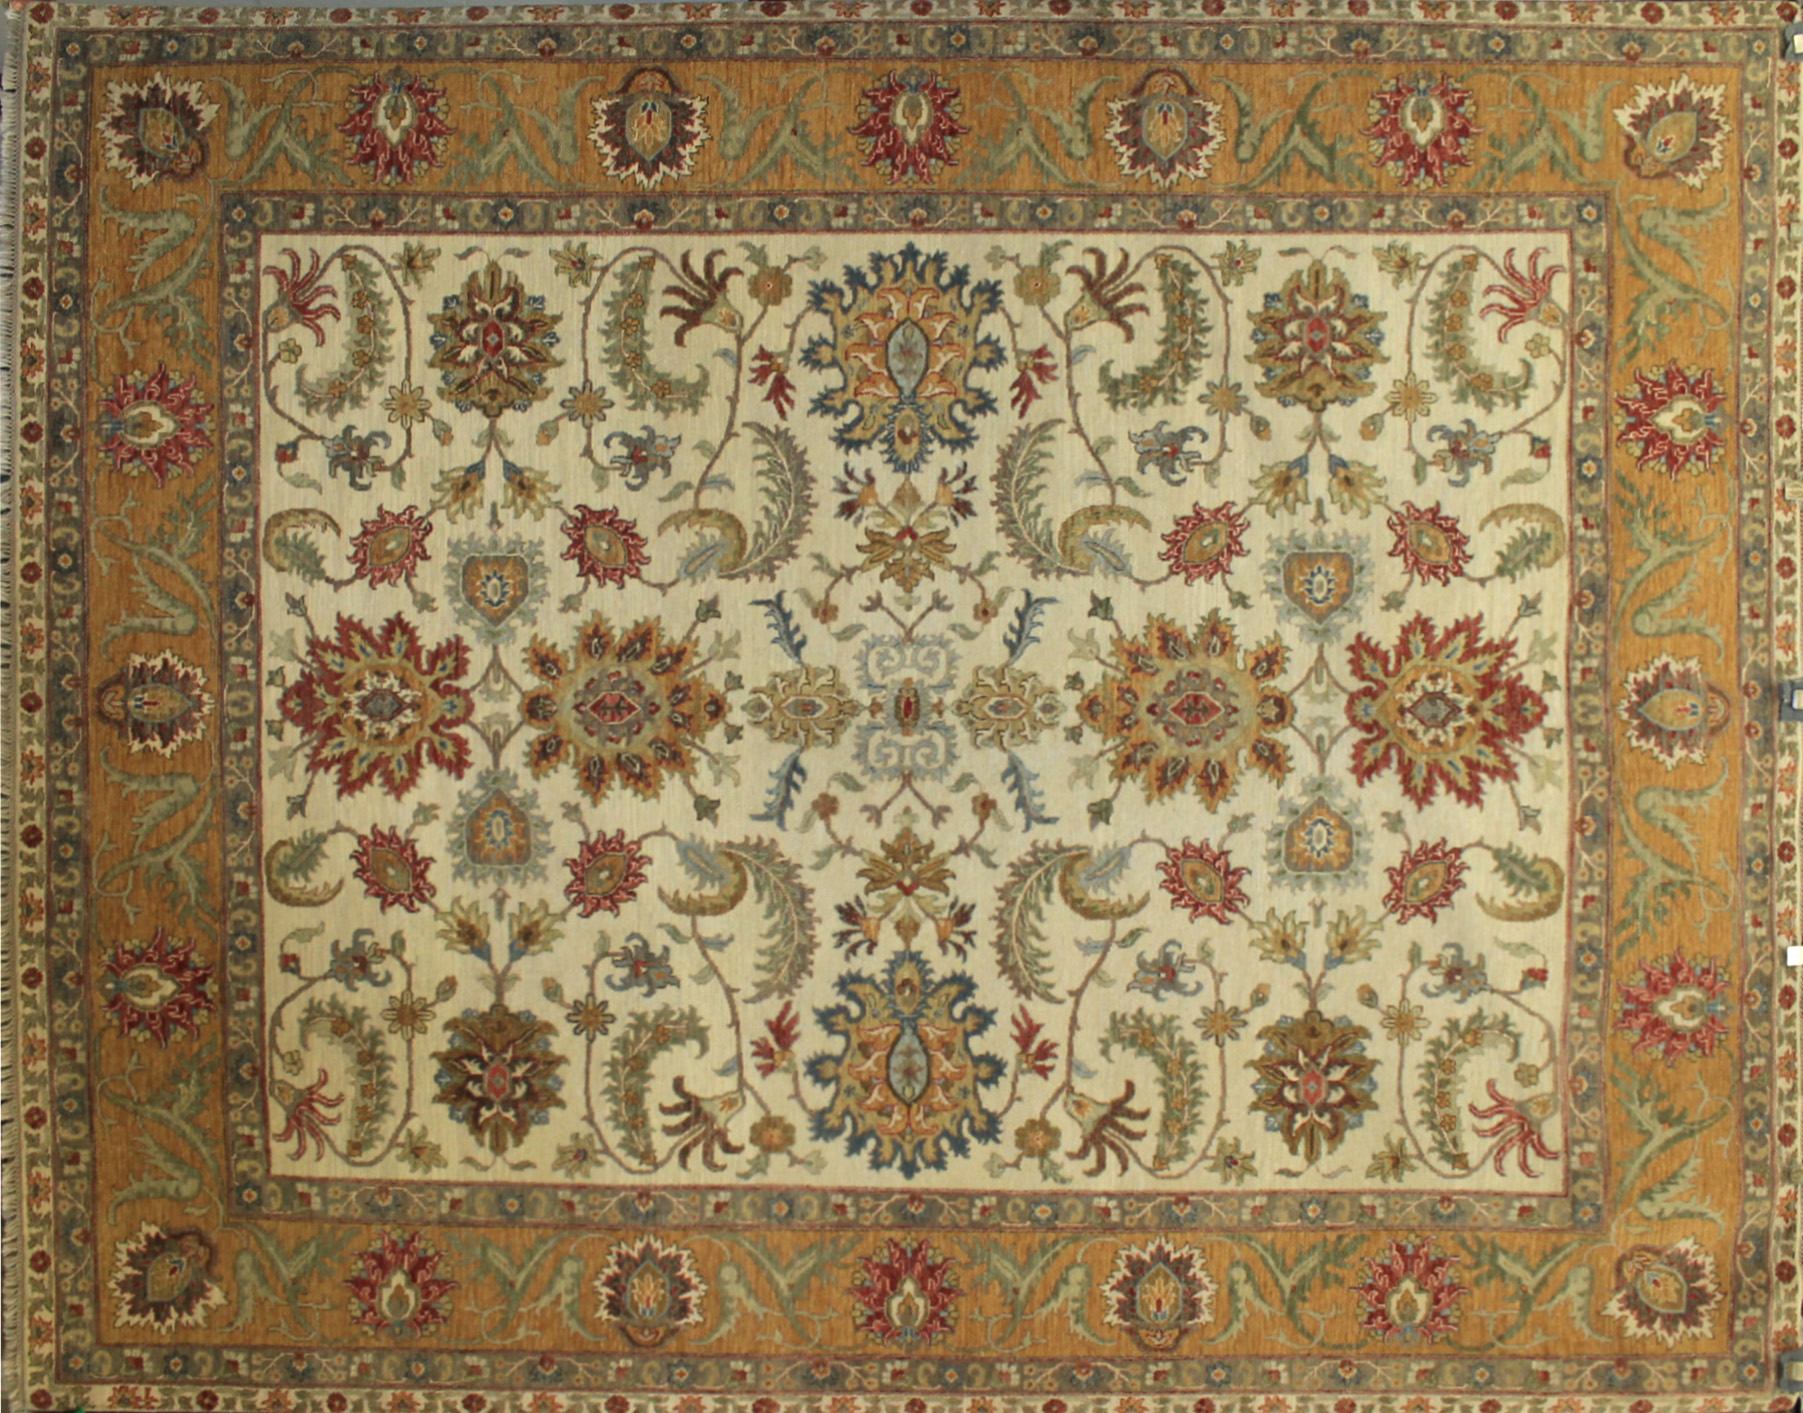 8x10 Traditional Hand Knotted Wool Area Rug - MR17329